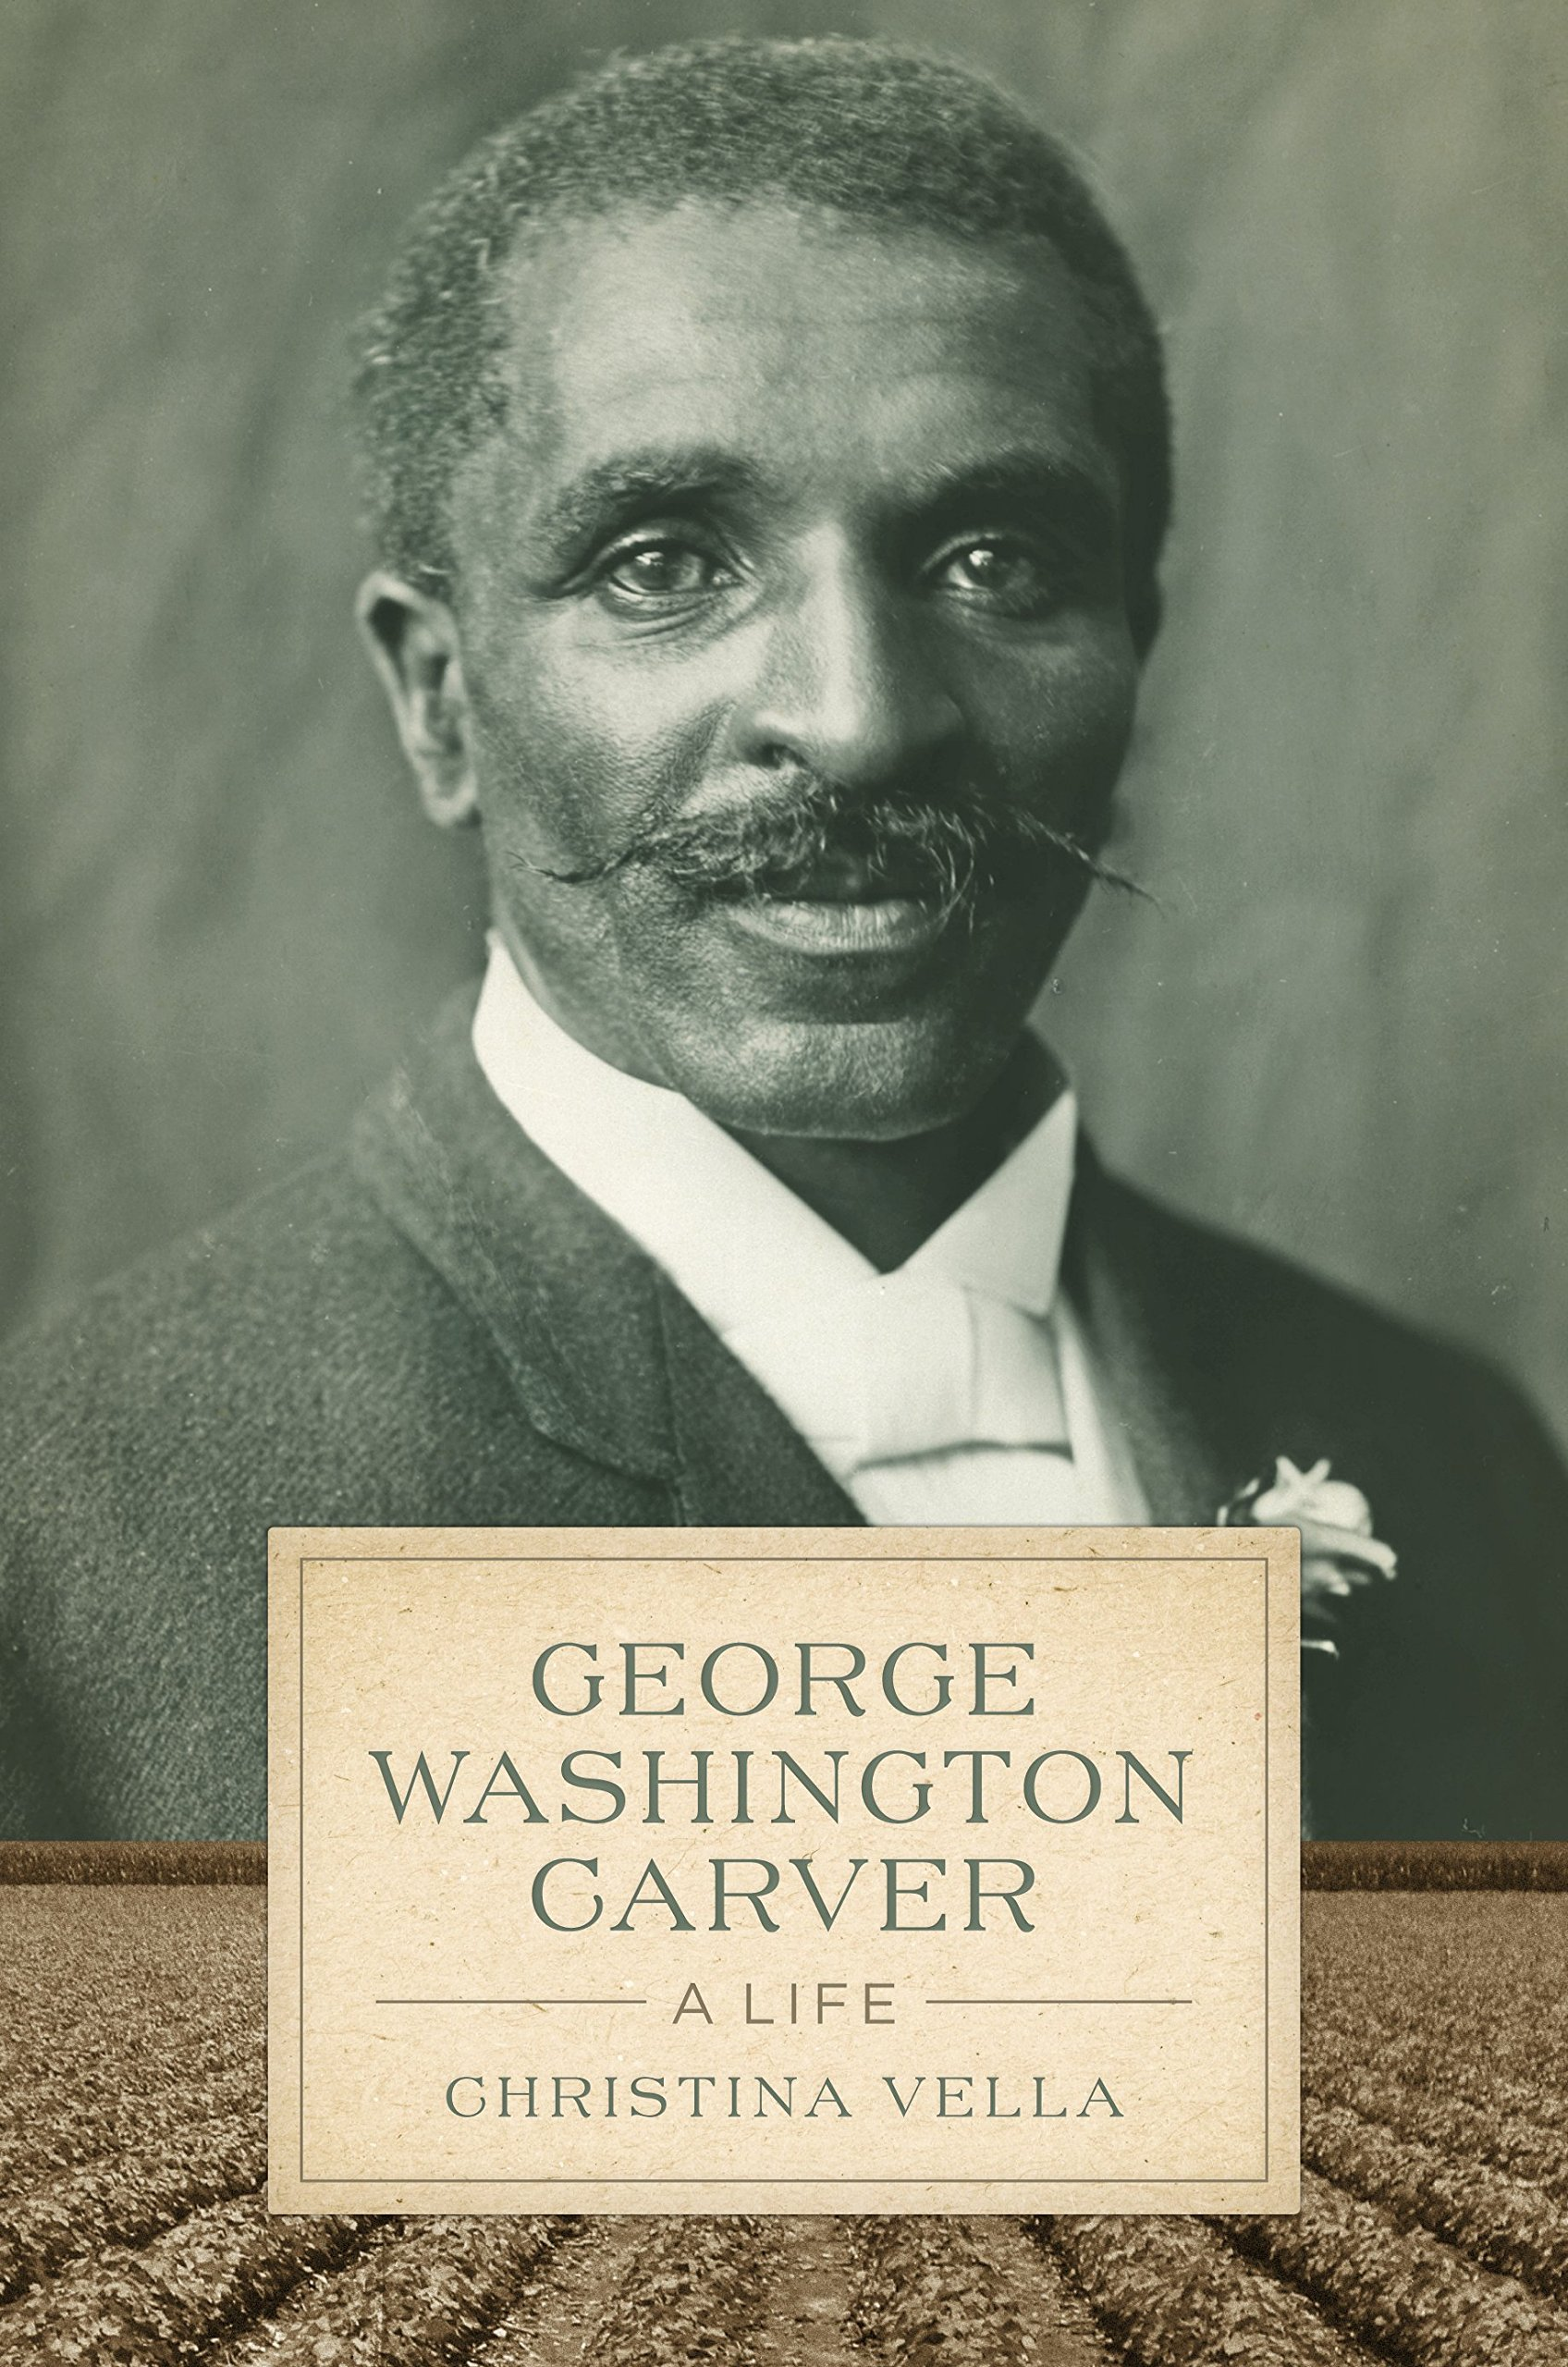 george washington carver a life southern biography series george washington carver a life southern biography series christina vella 9780807160749 com books